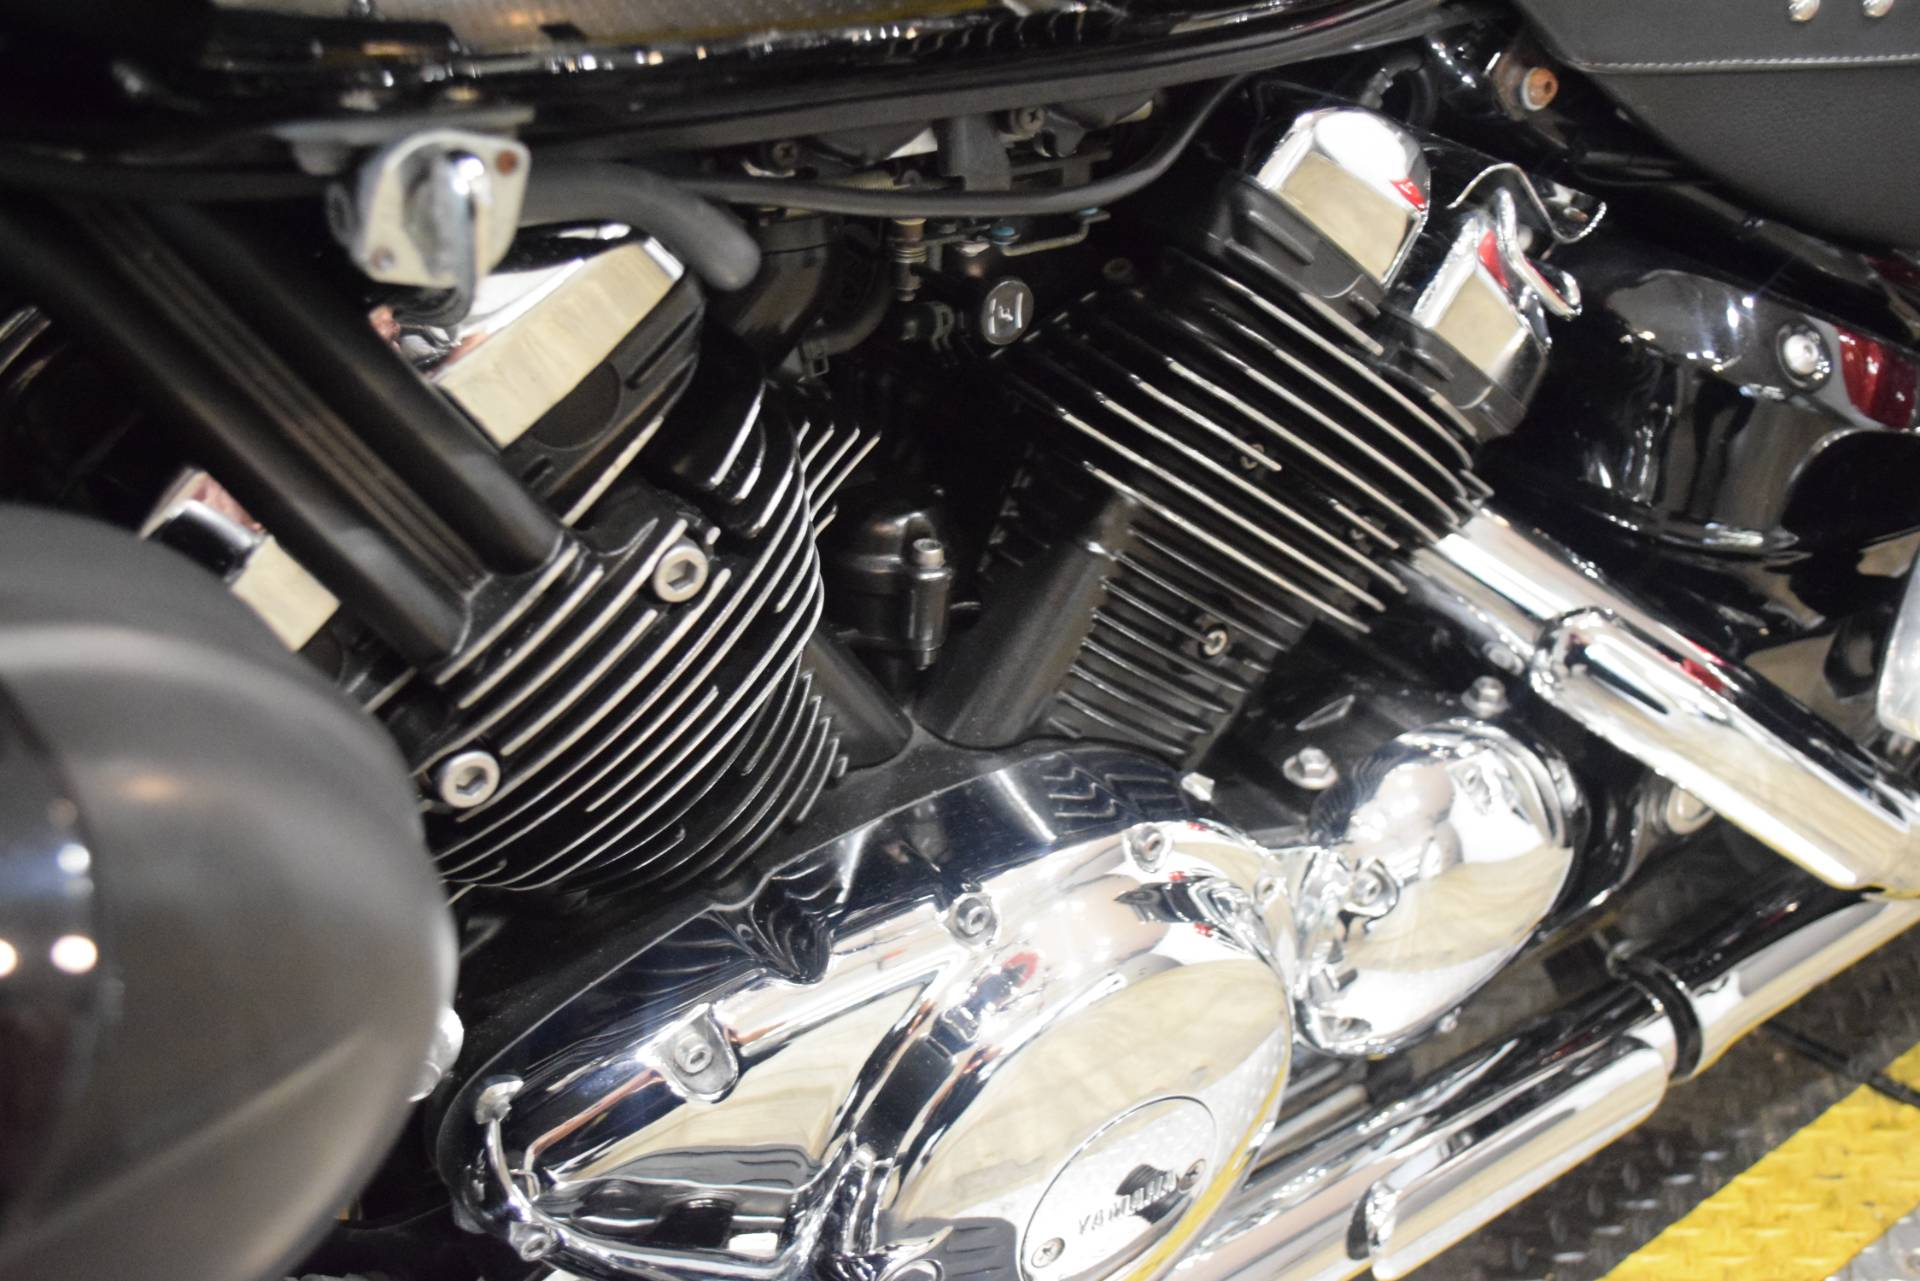 2007 Yamaha Royal Star® Tour Deluxe in Wauconda, Illinois - Photo 19